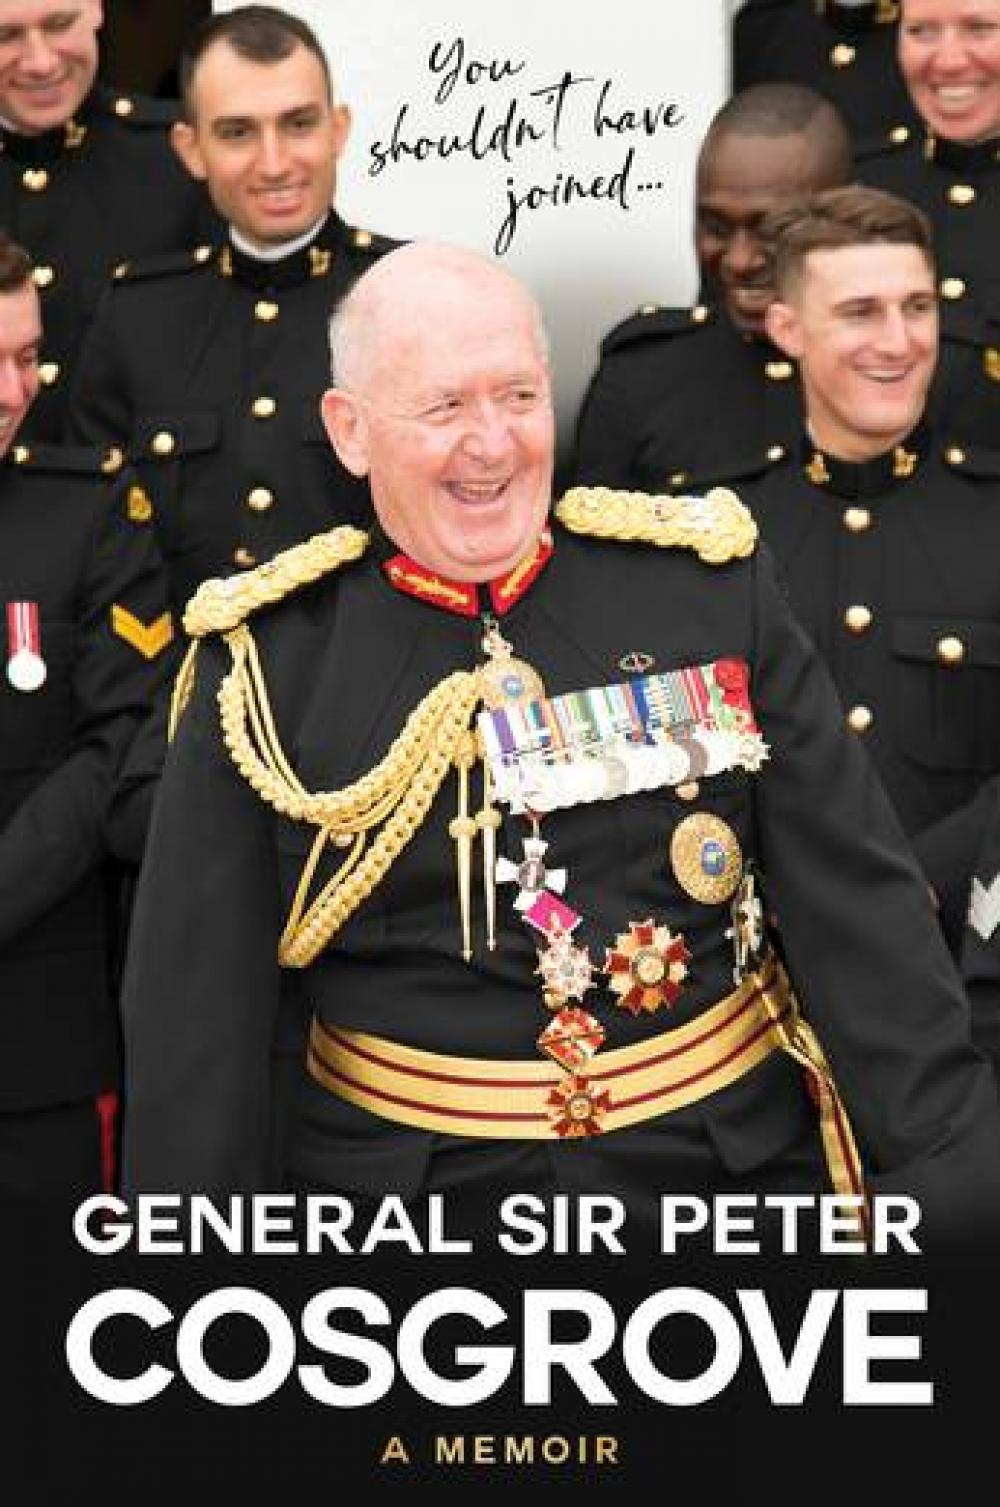 In conversation: General Sir Peter Cosgrove with Richard Glover